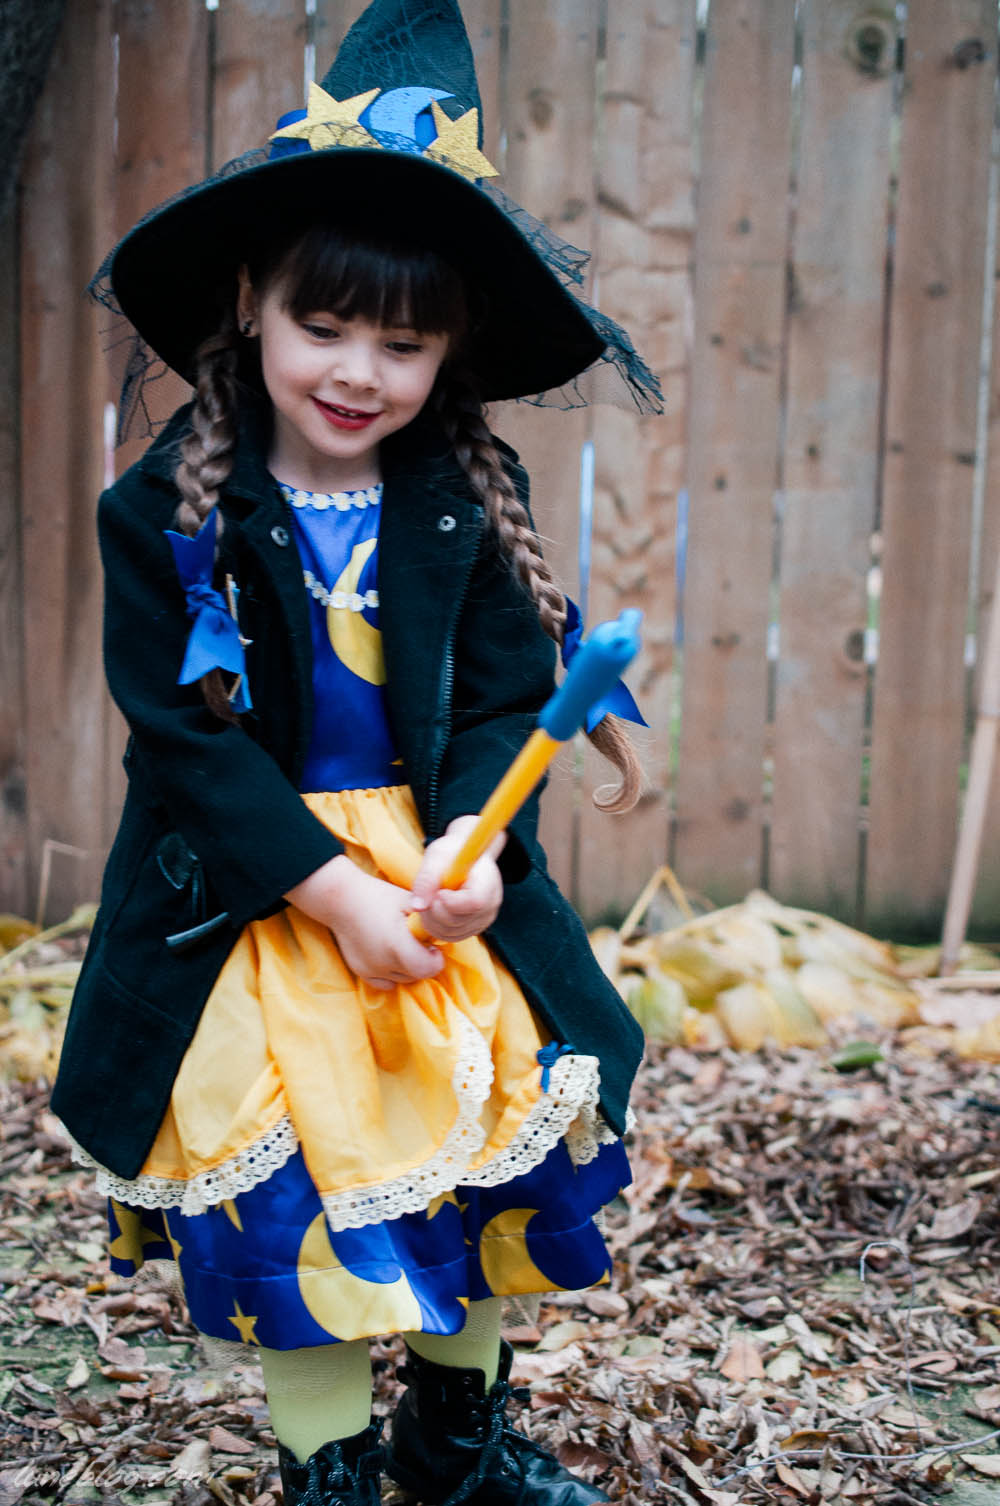 halloween costumes 2015 lune travels blog (36 of 39).jpg